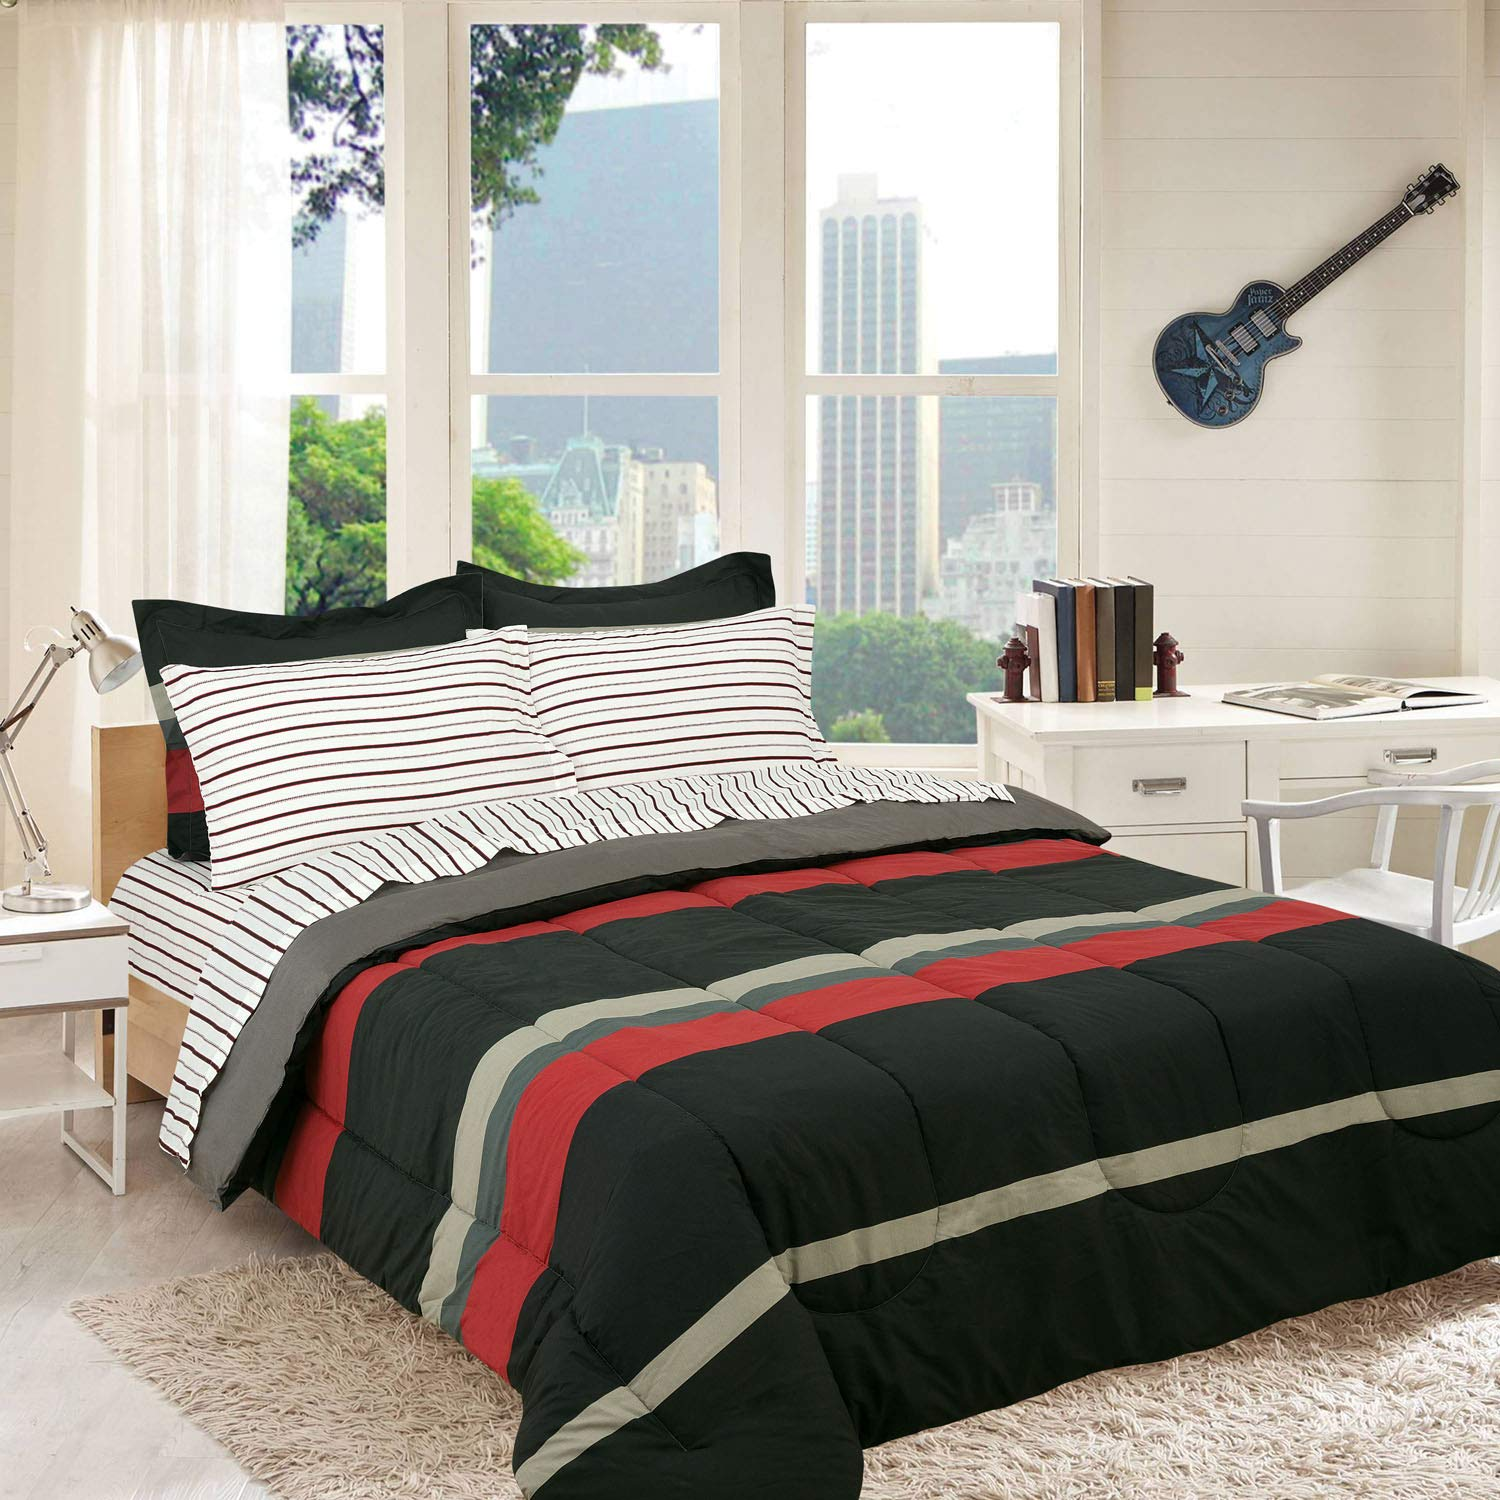 Royale Linens Campus Colors Rugby Stripe Red and Grey, Reversible, Twin Extra Long, Complete Set, XL